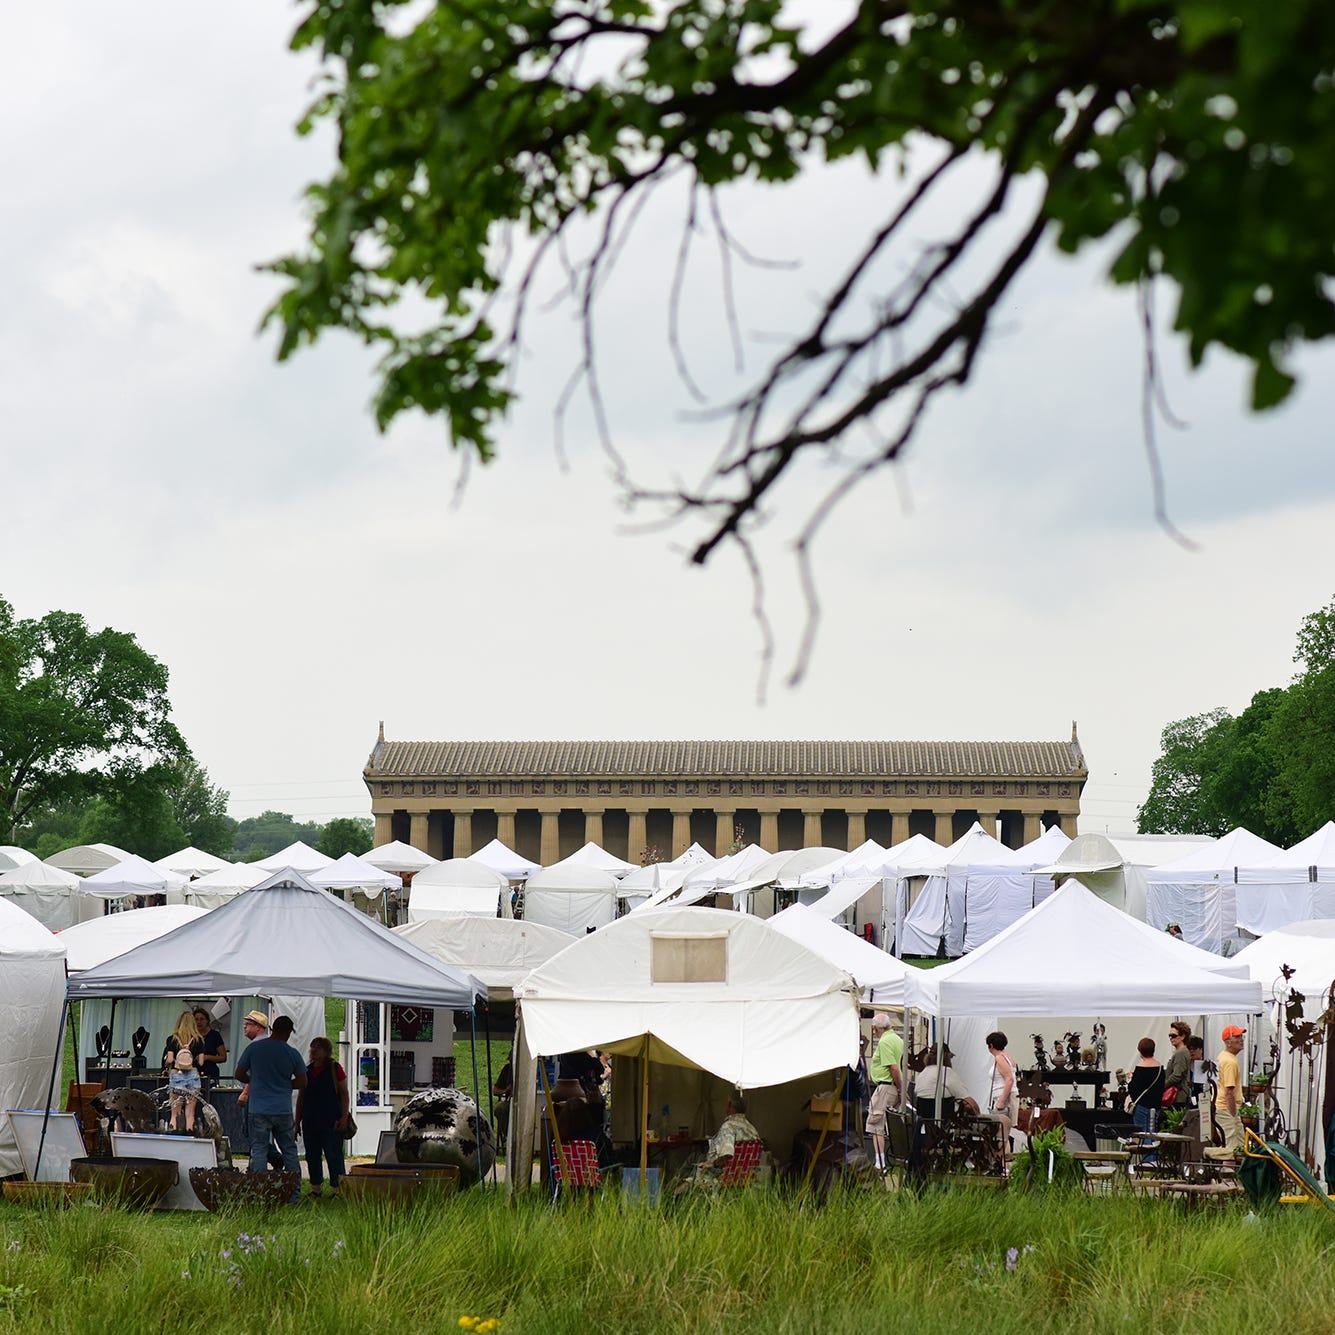 Free things to do in Nashville this weekend: Craft fair, strawberries, concerts and sales